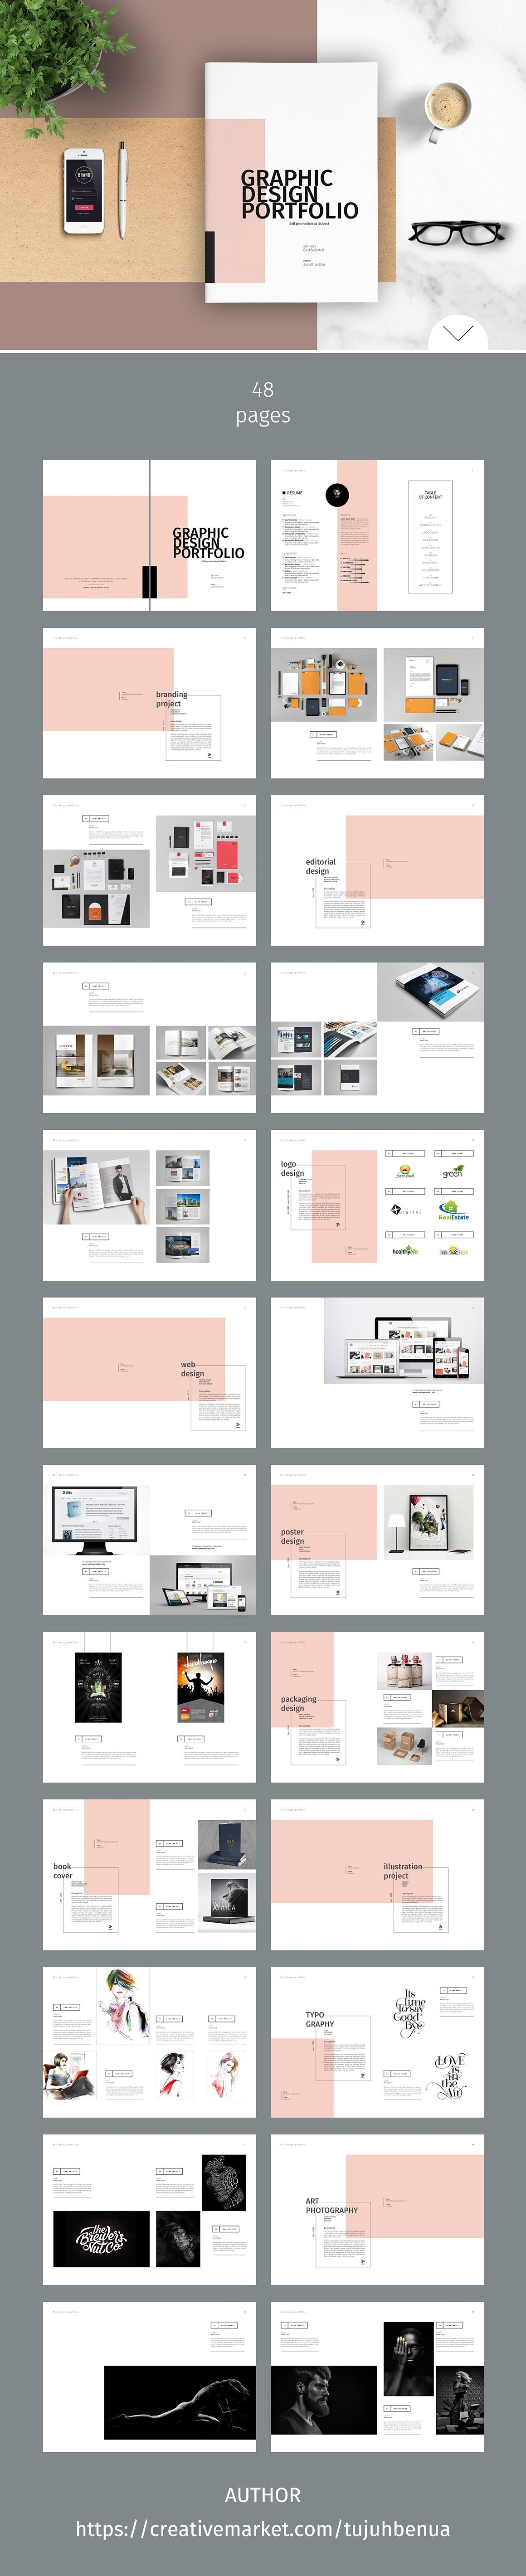 Graphic Design Portfolio Template By Tujuhbenua On Creativemarket Portfolio Template Design Portfolio Design Layout Portfolio Design,Water Closet Interior Design